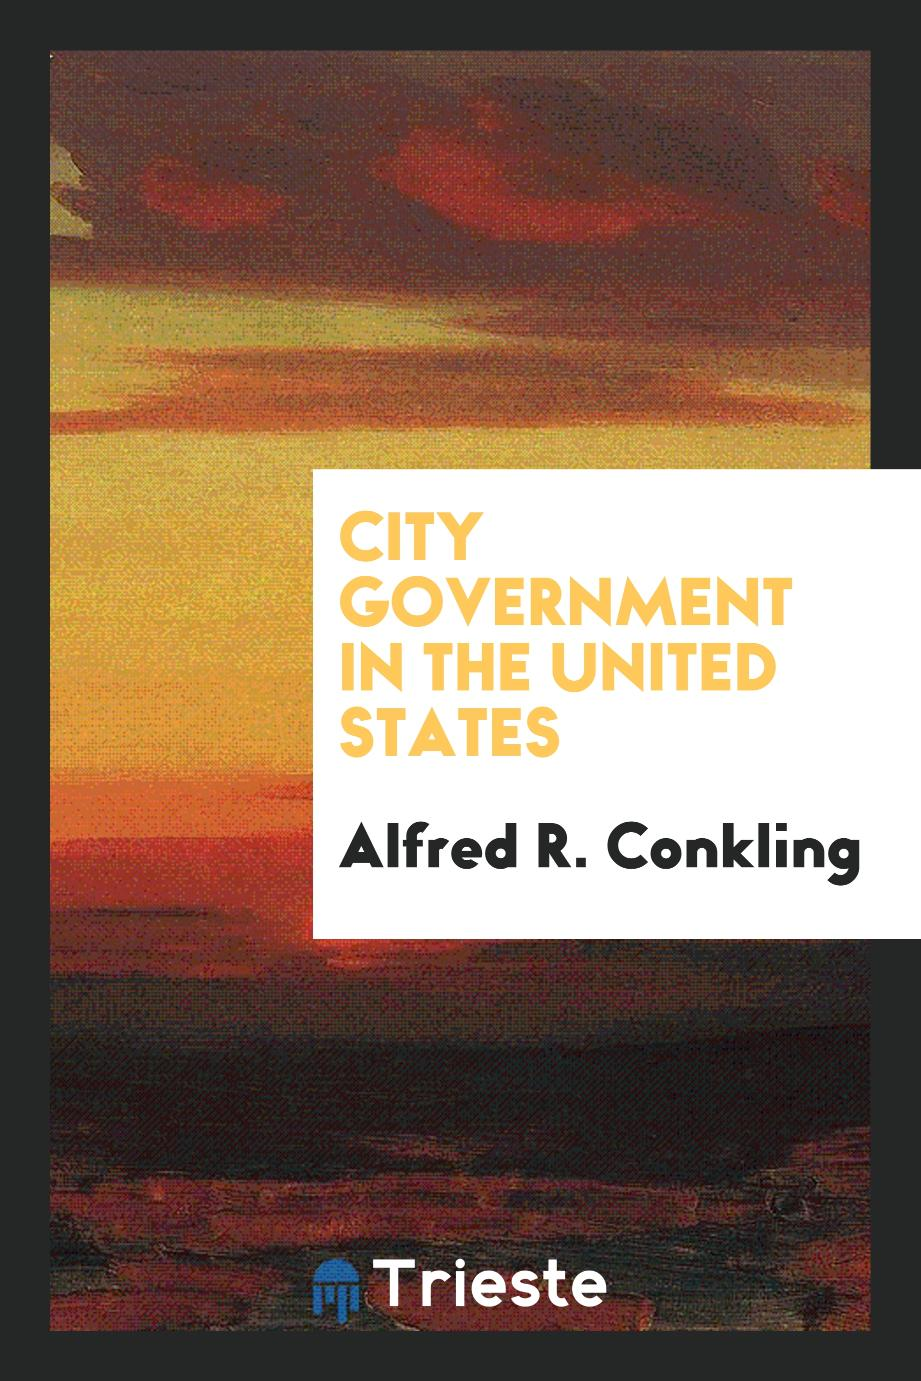 City Government in the United States